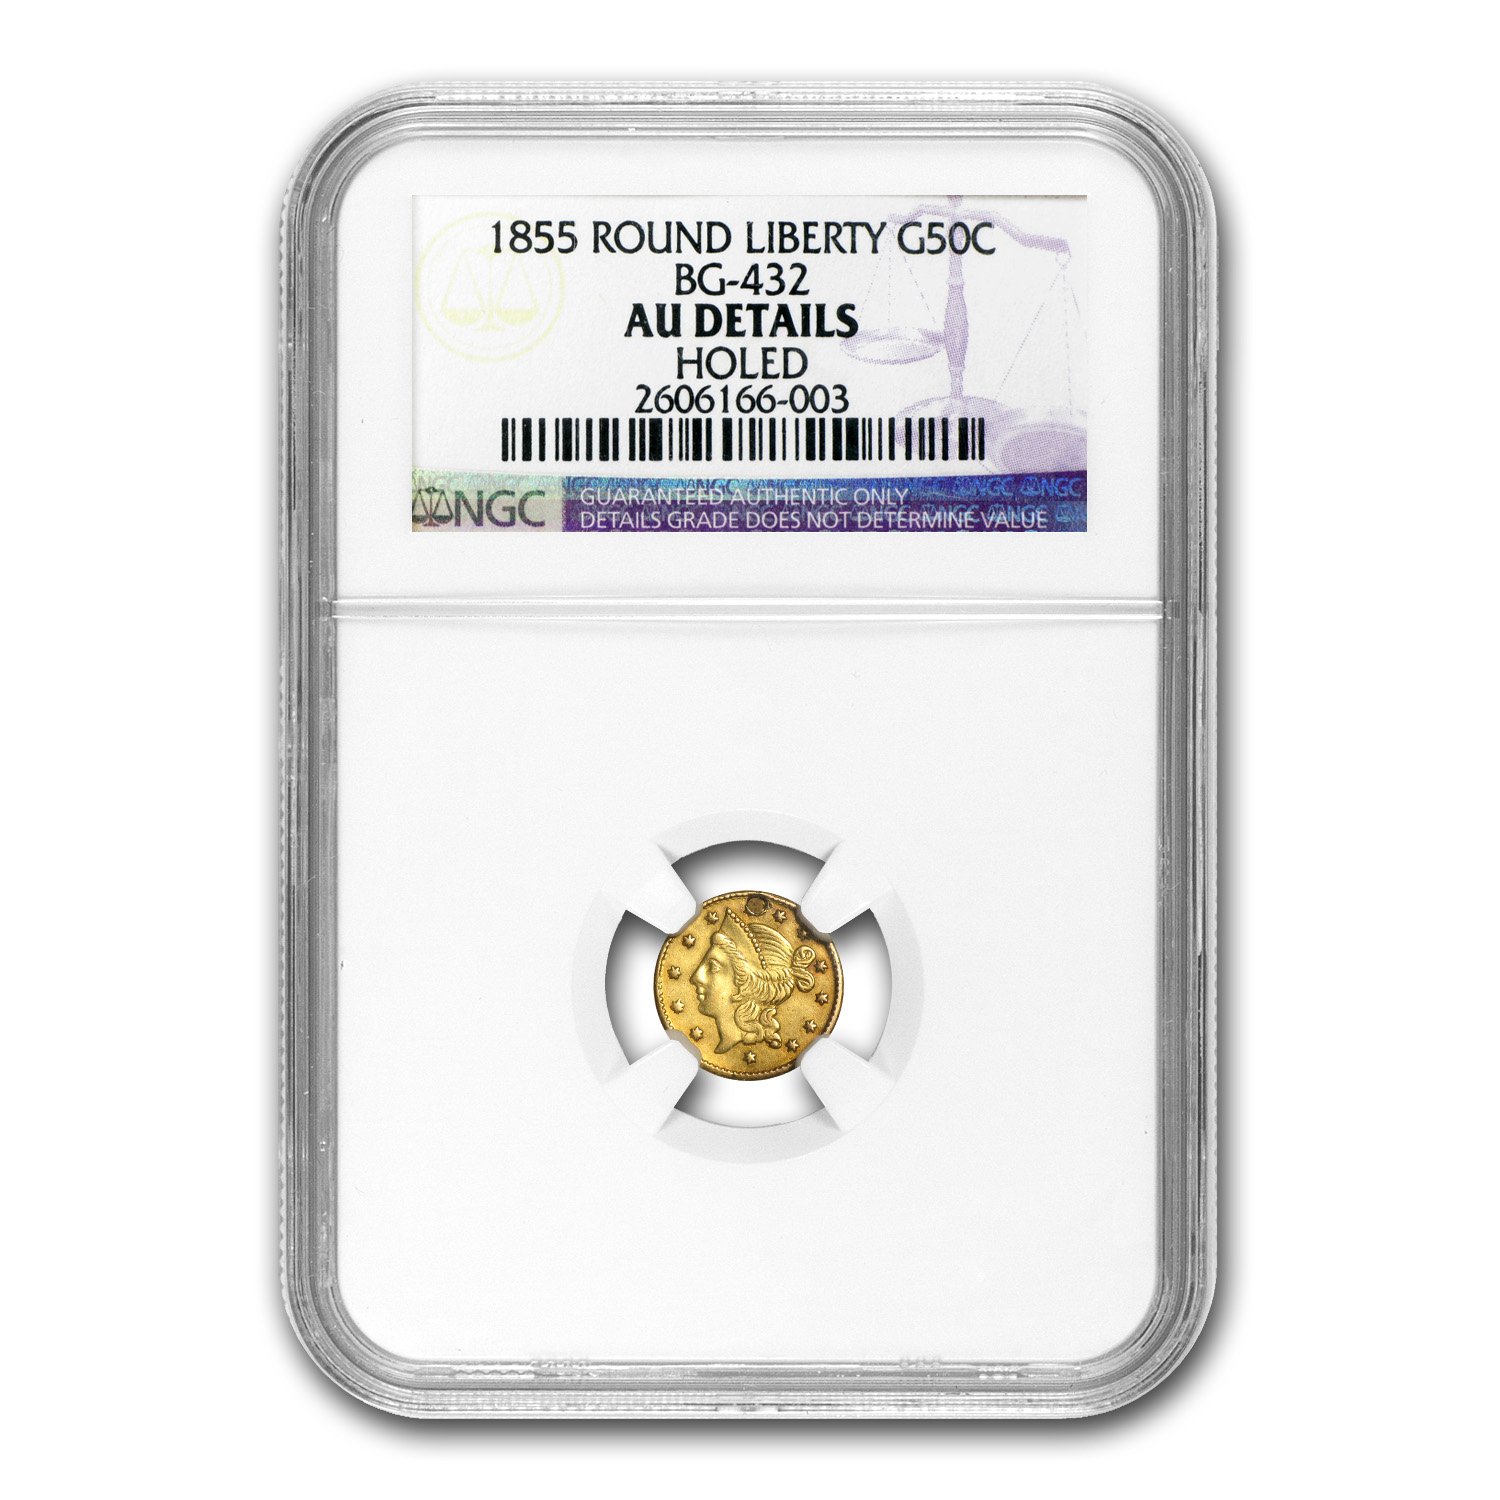 1855 BG-432 Liberty Round 50 Cent Gold AU Details NGC (Holed)